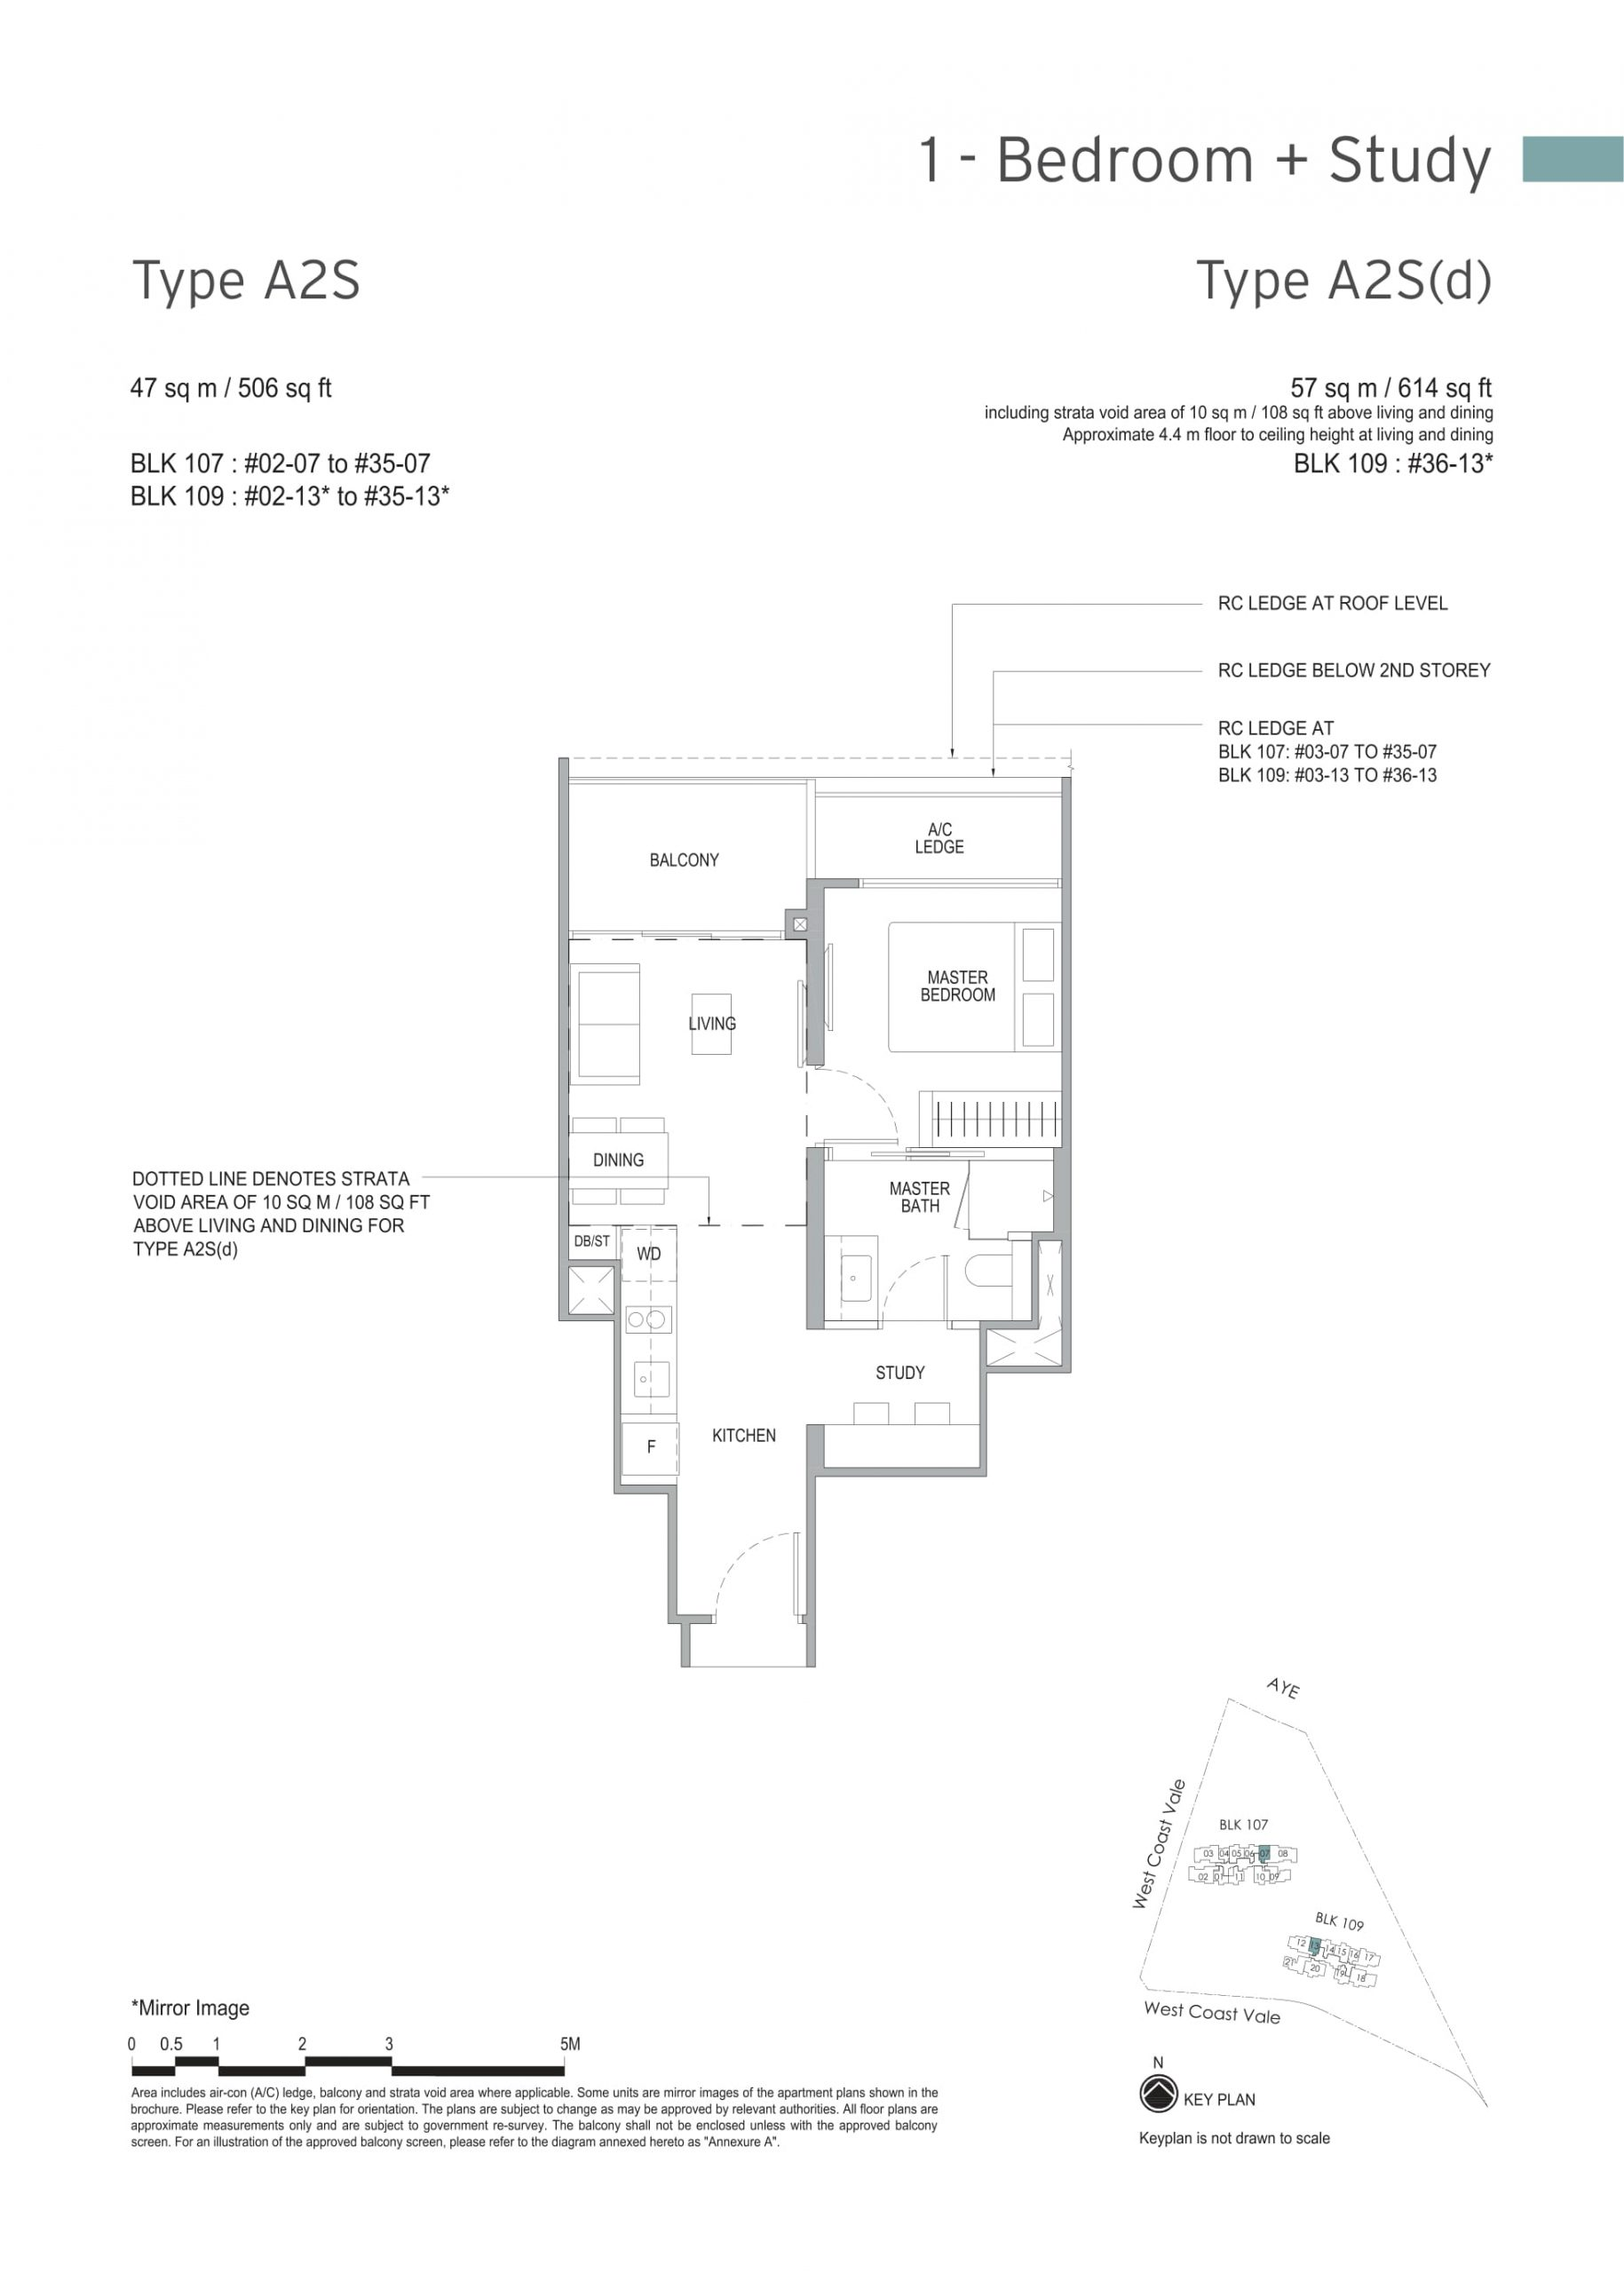 Whistler Grand's one-bedroom & one-bedroom + study types